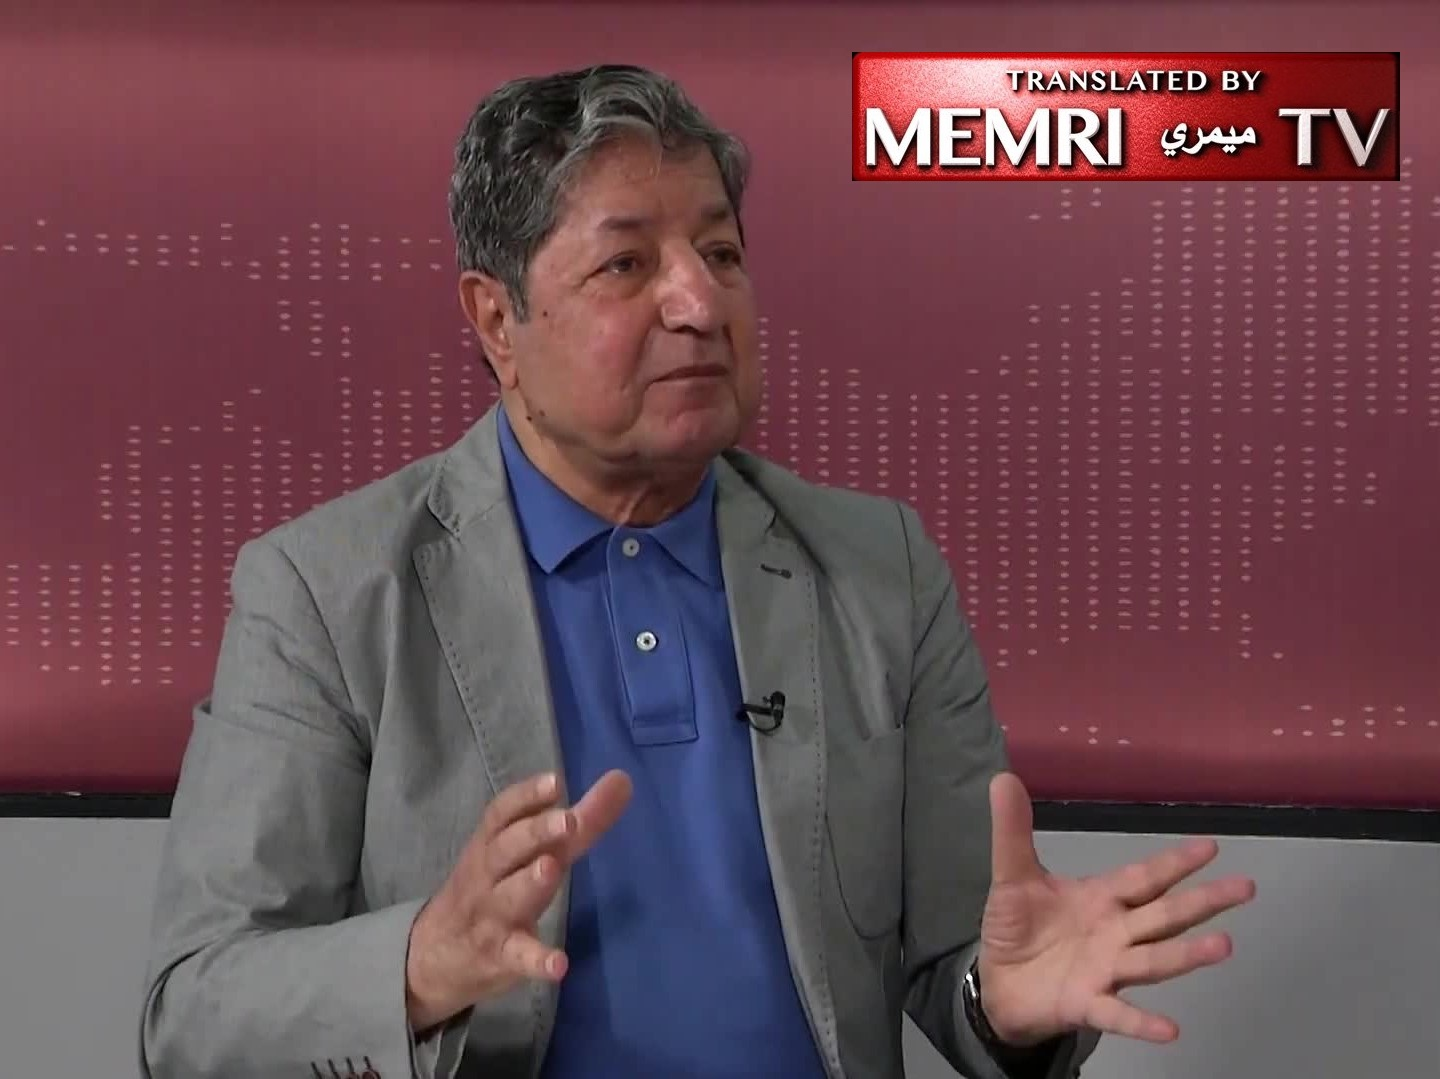 Former Iraqi Ambassador to France Ghazi Faisal: Iran's Policies of Aggression, Terrorism Are Catastrophic and Will Lead to Its Economic Collapse